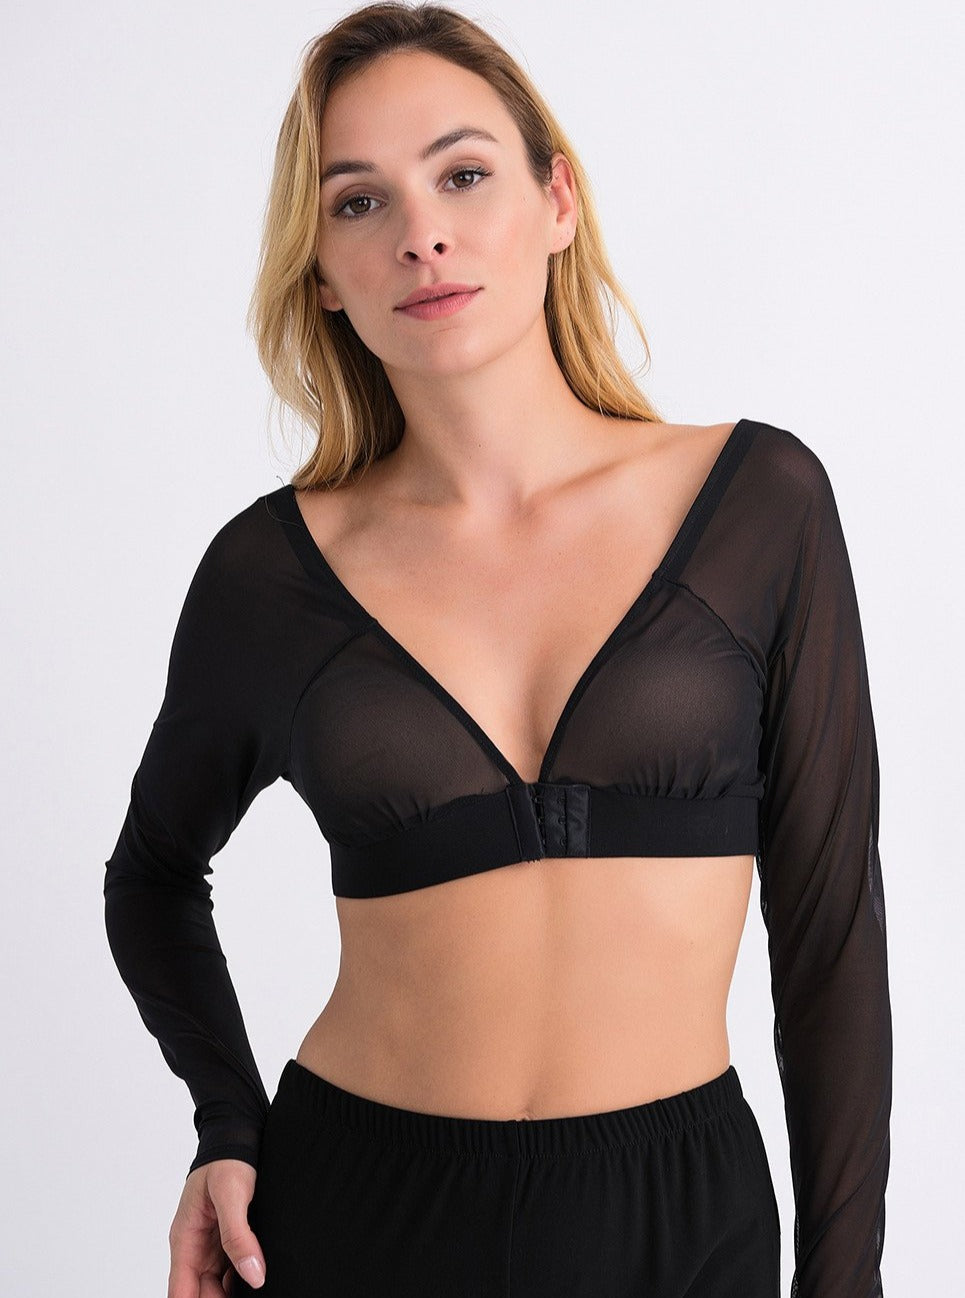 Sheer Black Underlay Cami